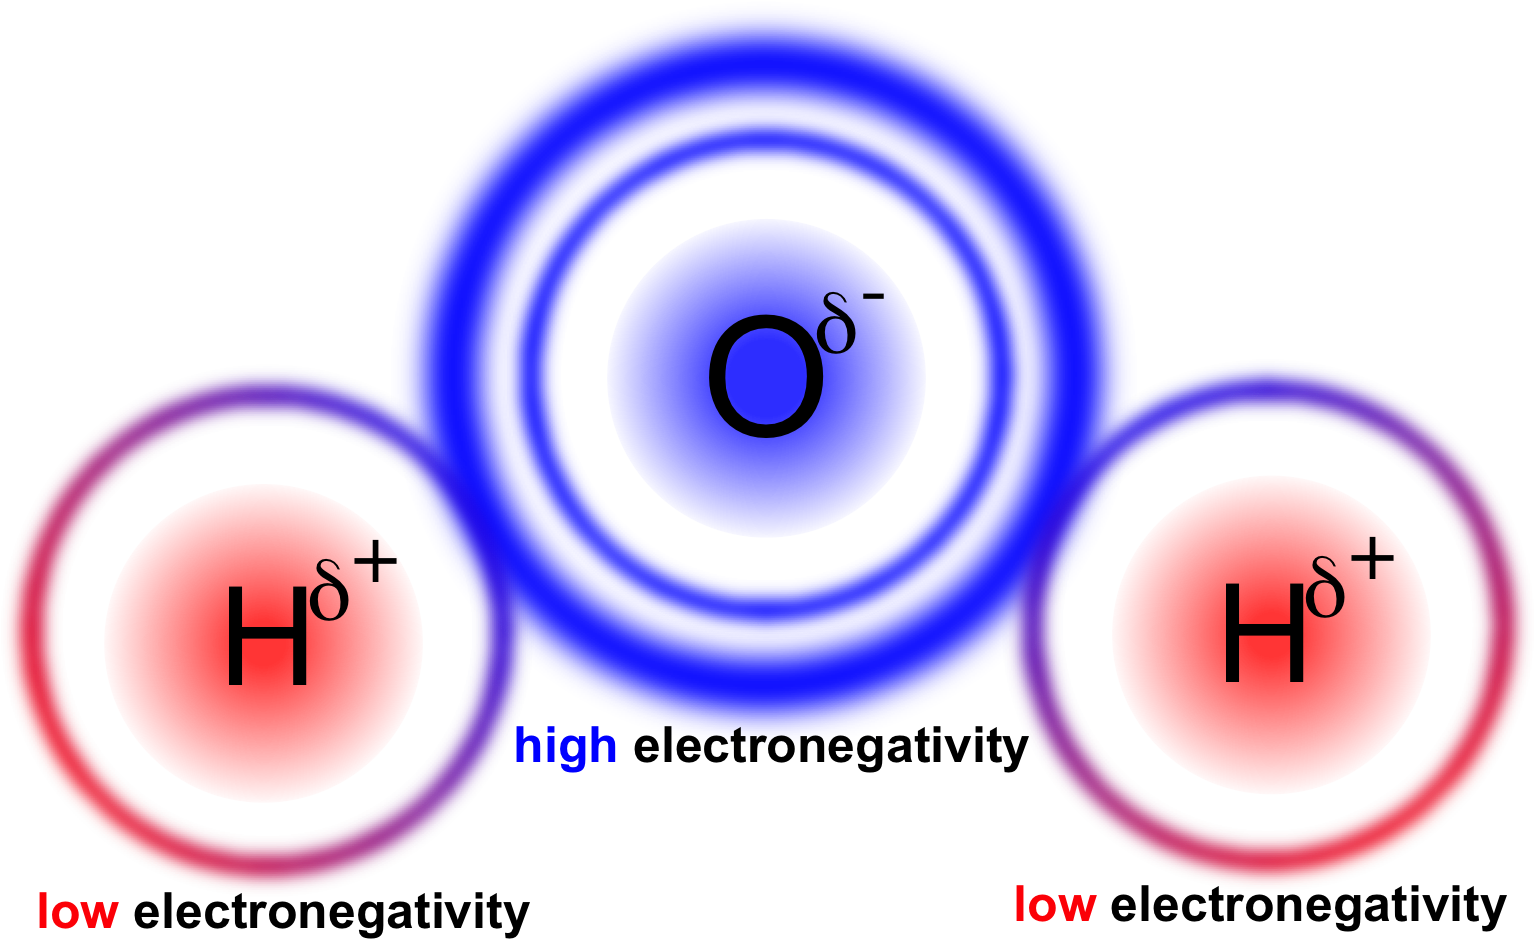 Figure 13.   Polarity in water.  Oxygen has a higher electronegativity than hydrogen causing it to retain shared electrons more, giving oxygen a partially negative charge and hydrogen a partially positive charge.